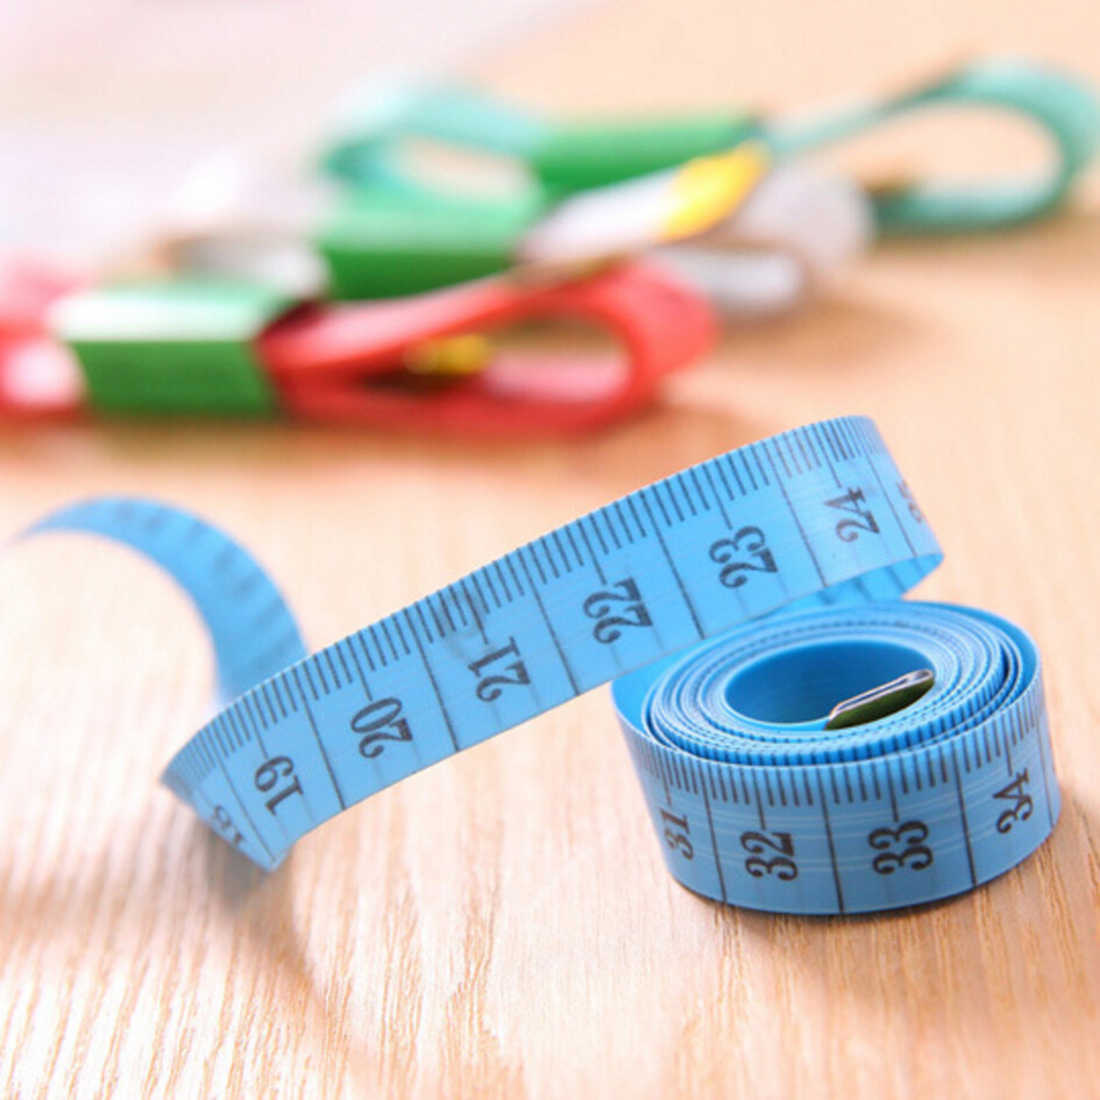 1.5M Sewing Ruler Meter Sewing Measuring Tape Body Measuring Ruler Sewing Tailor Tape Measure Soft Random Color